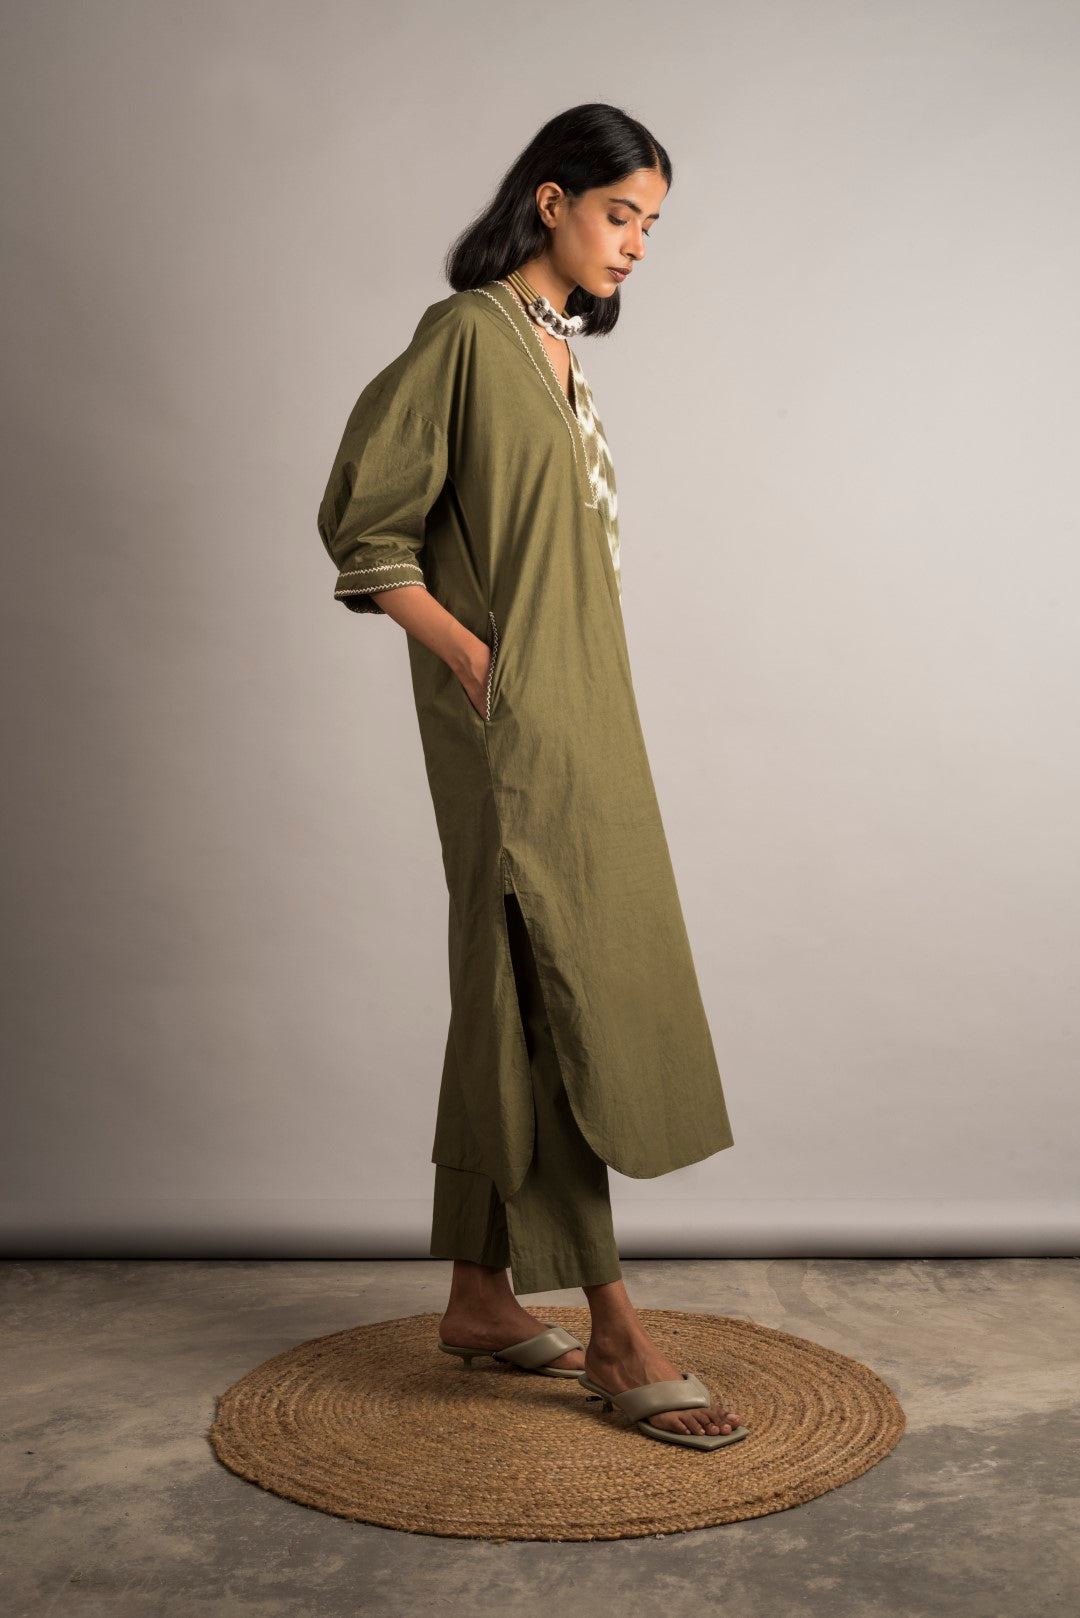 Moss Green Tunic/Set - Auruhfy India